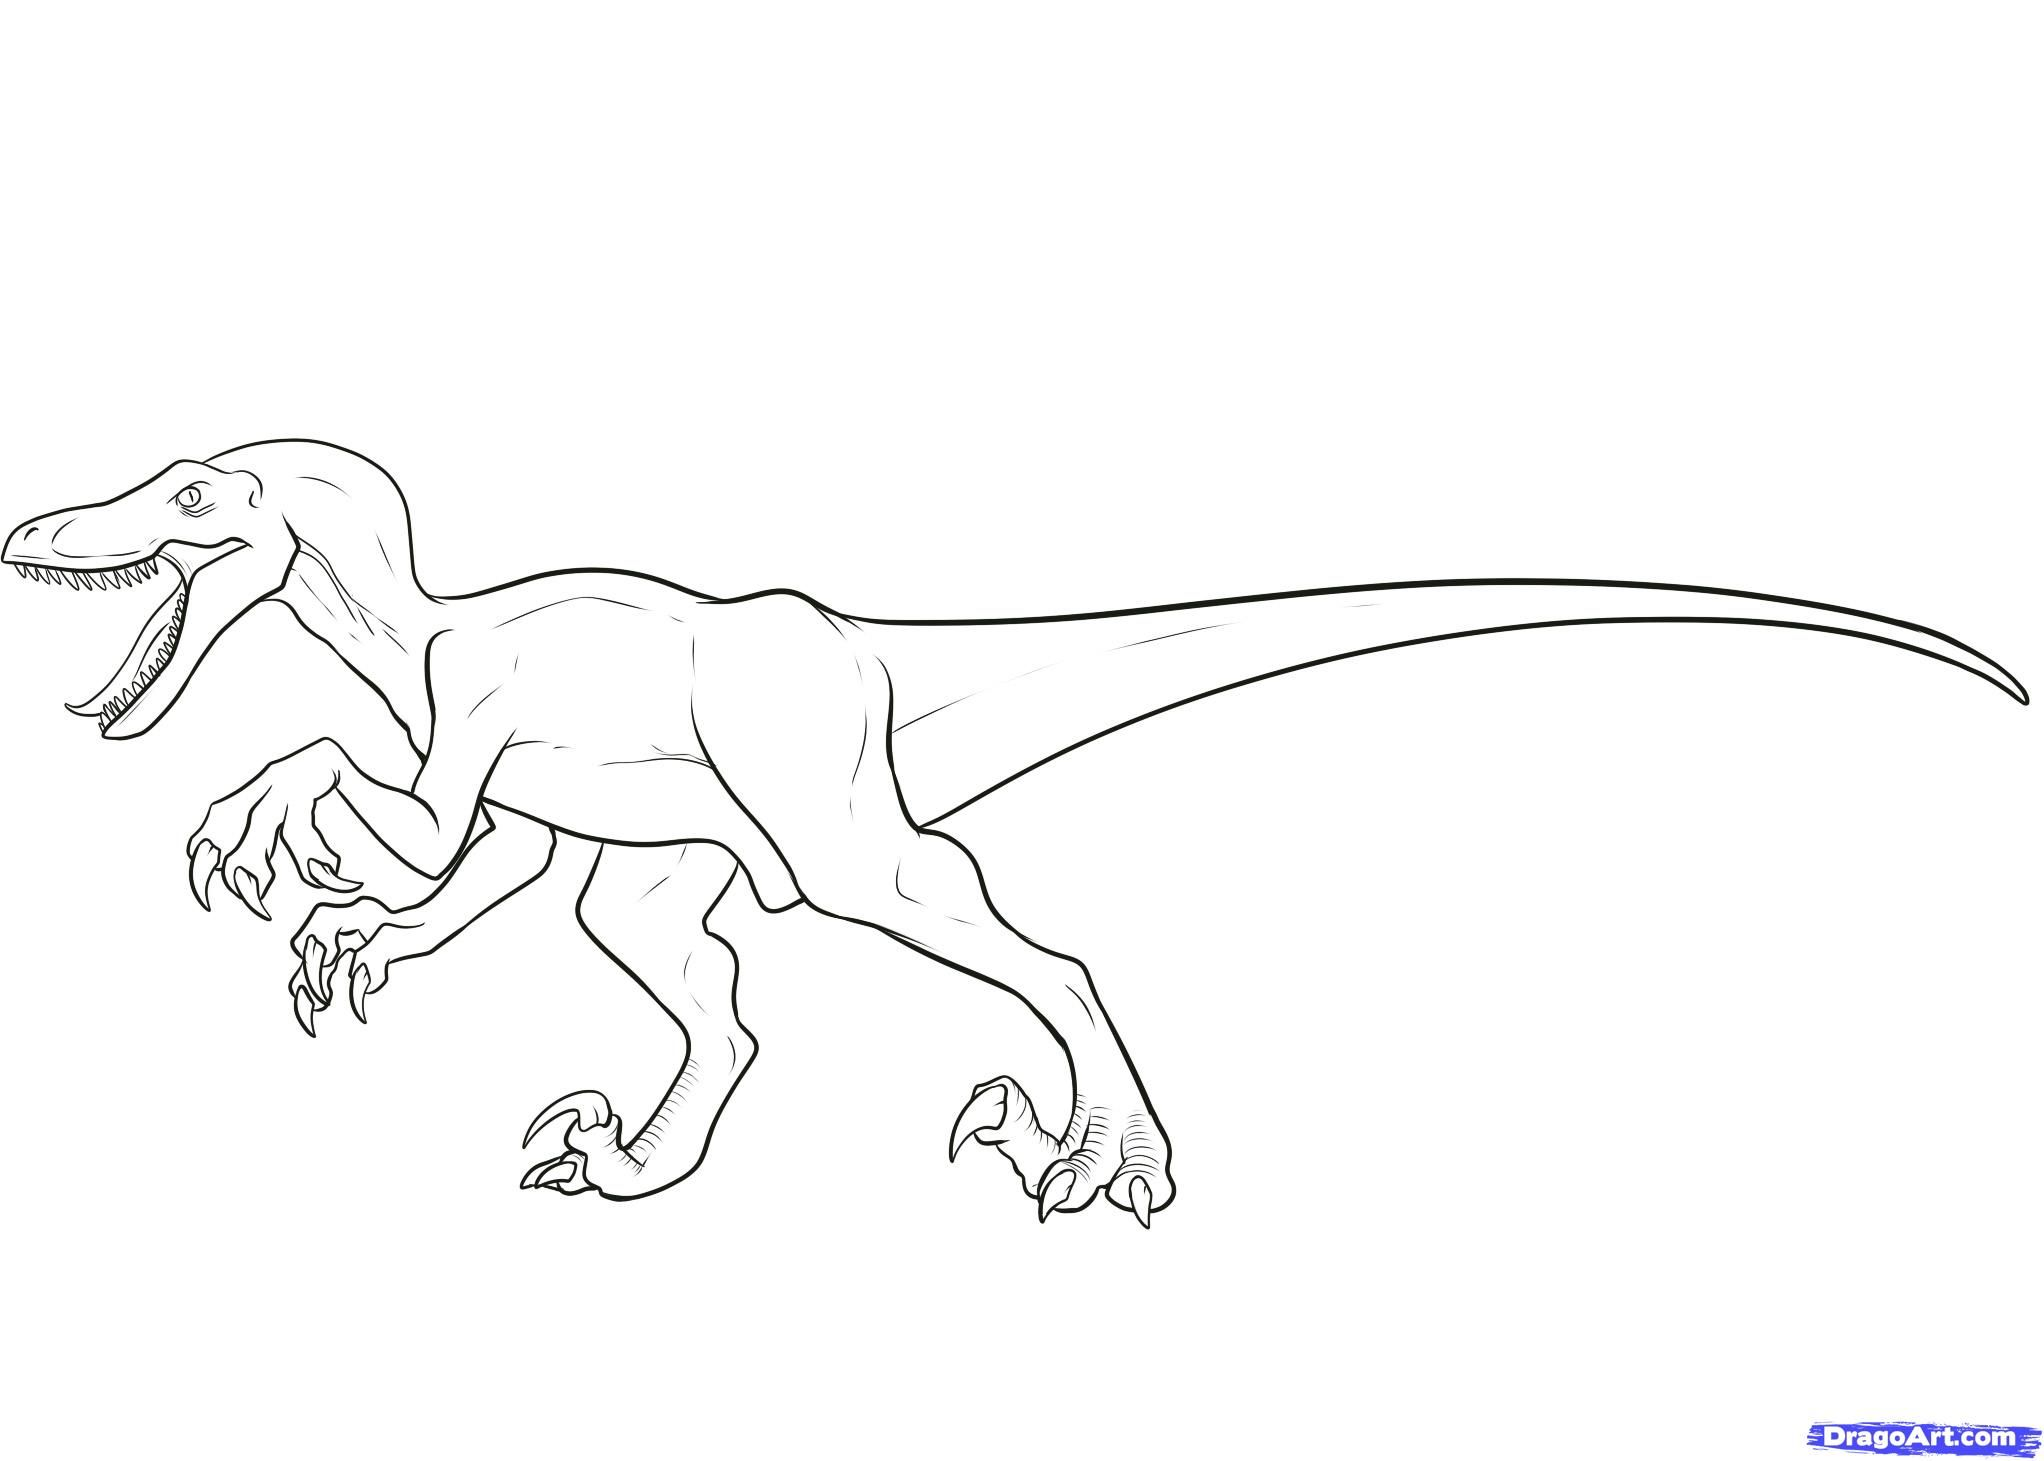 dinosaurs velociraptor coloring pages - photo#26